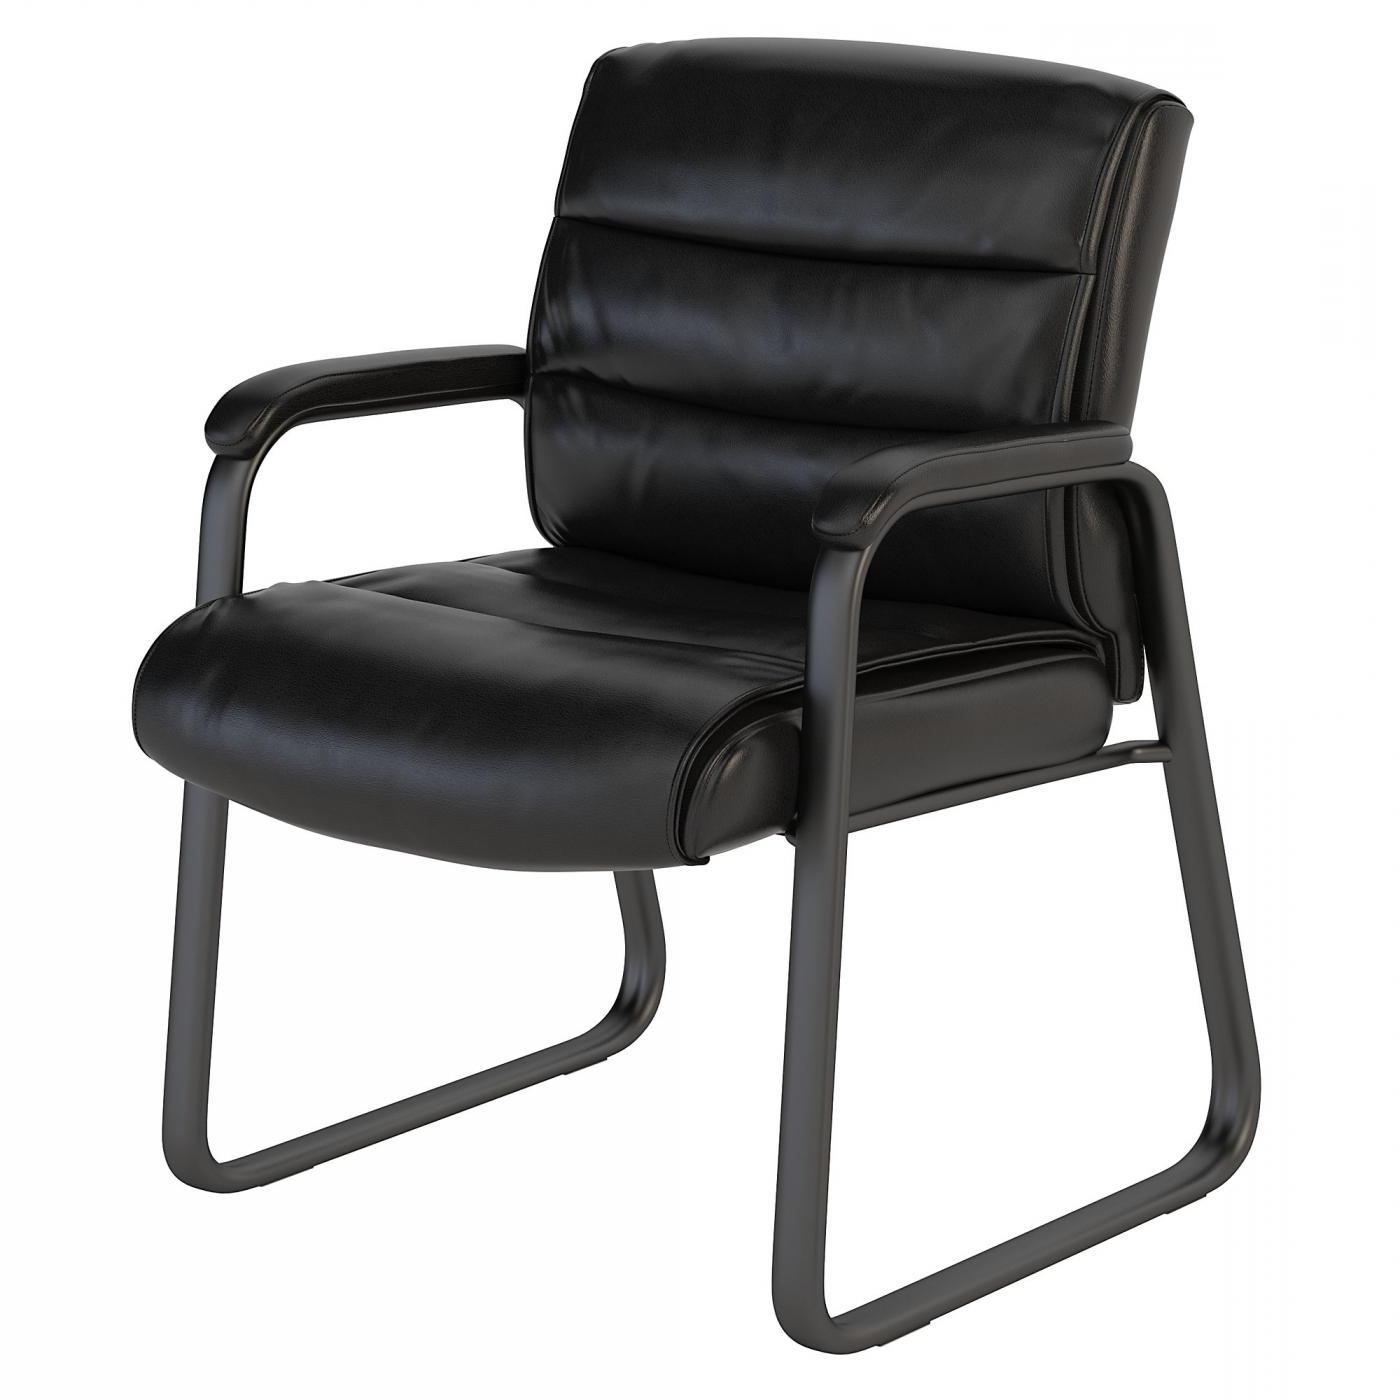 BUSH BUSINESS FURNITURE SOFT SENSE LEATHER GUEST CHAIR. FREE SHIPPING.  SALE DEDUCT 10% MORE ENTER '10percent' IN COUPON CODE BOX WHILE CHECKING OUT.